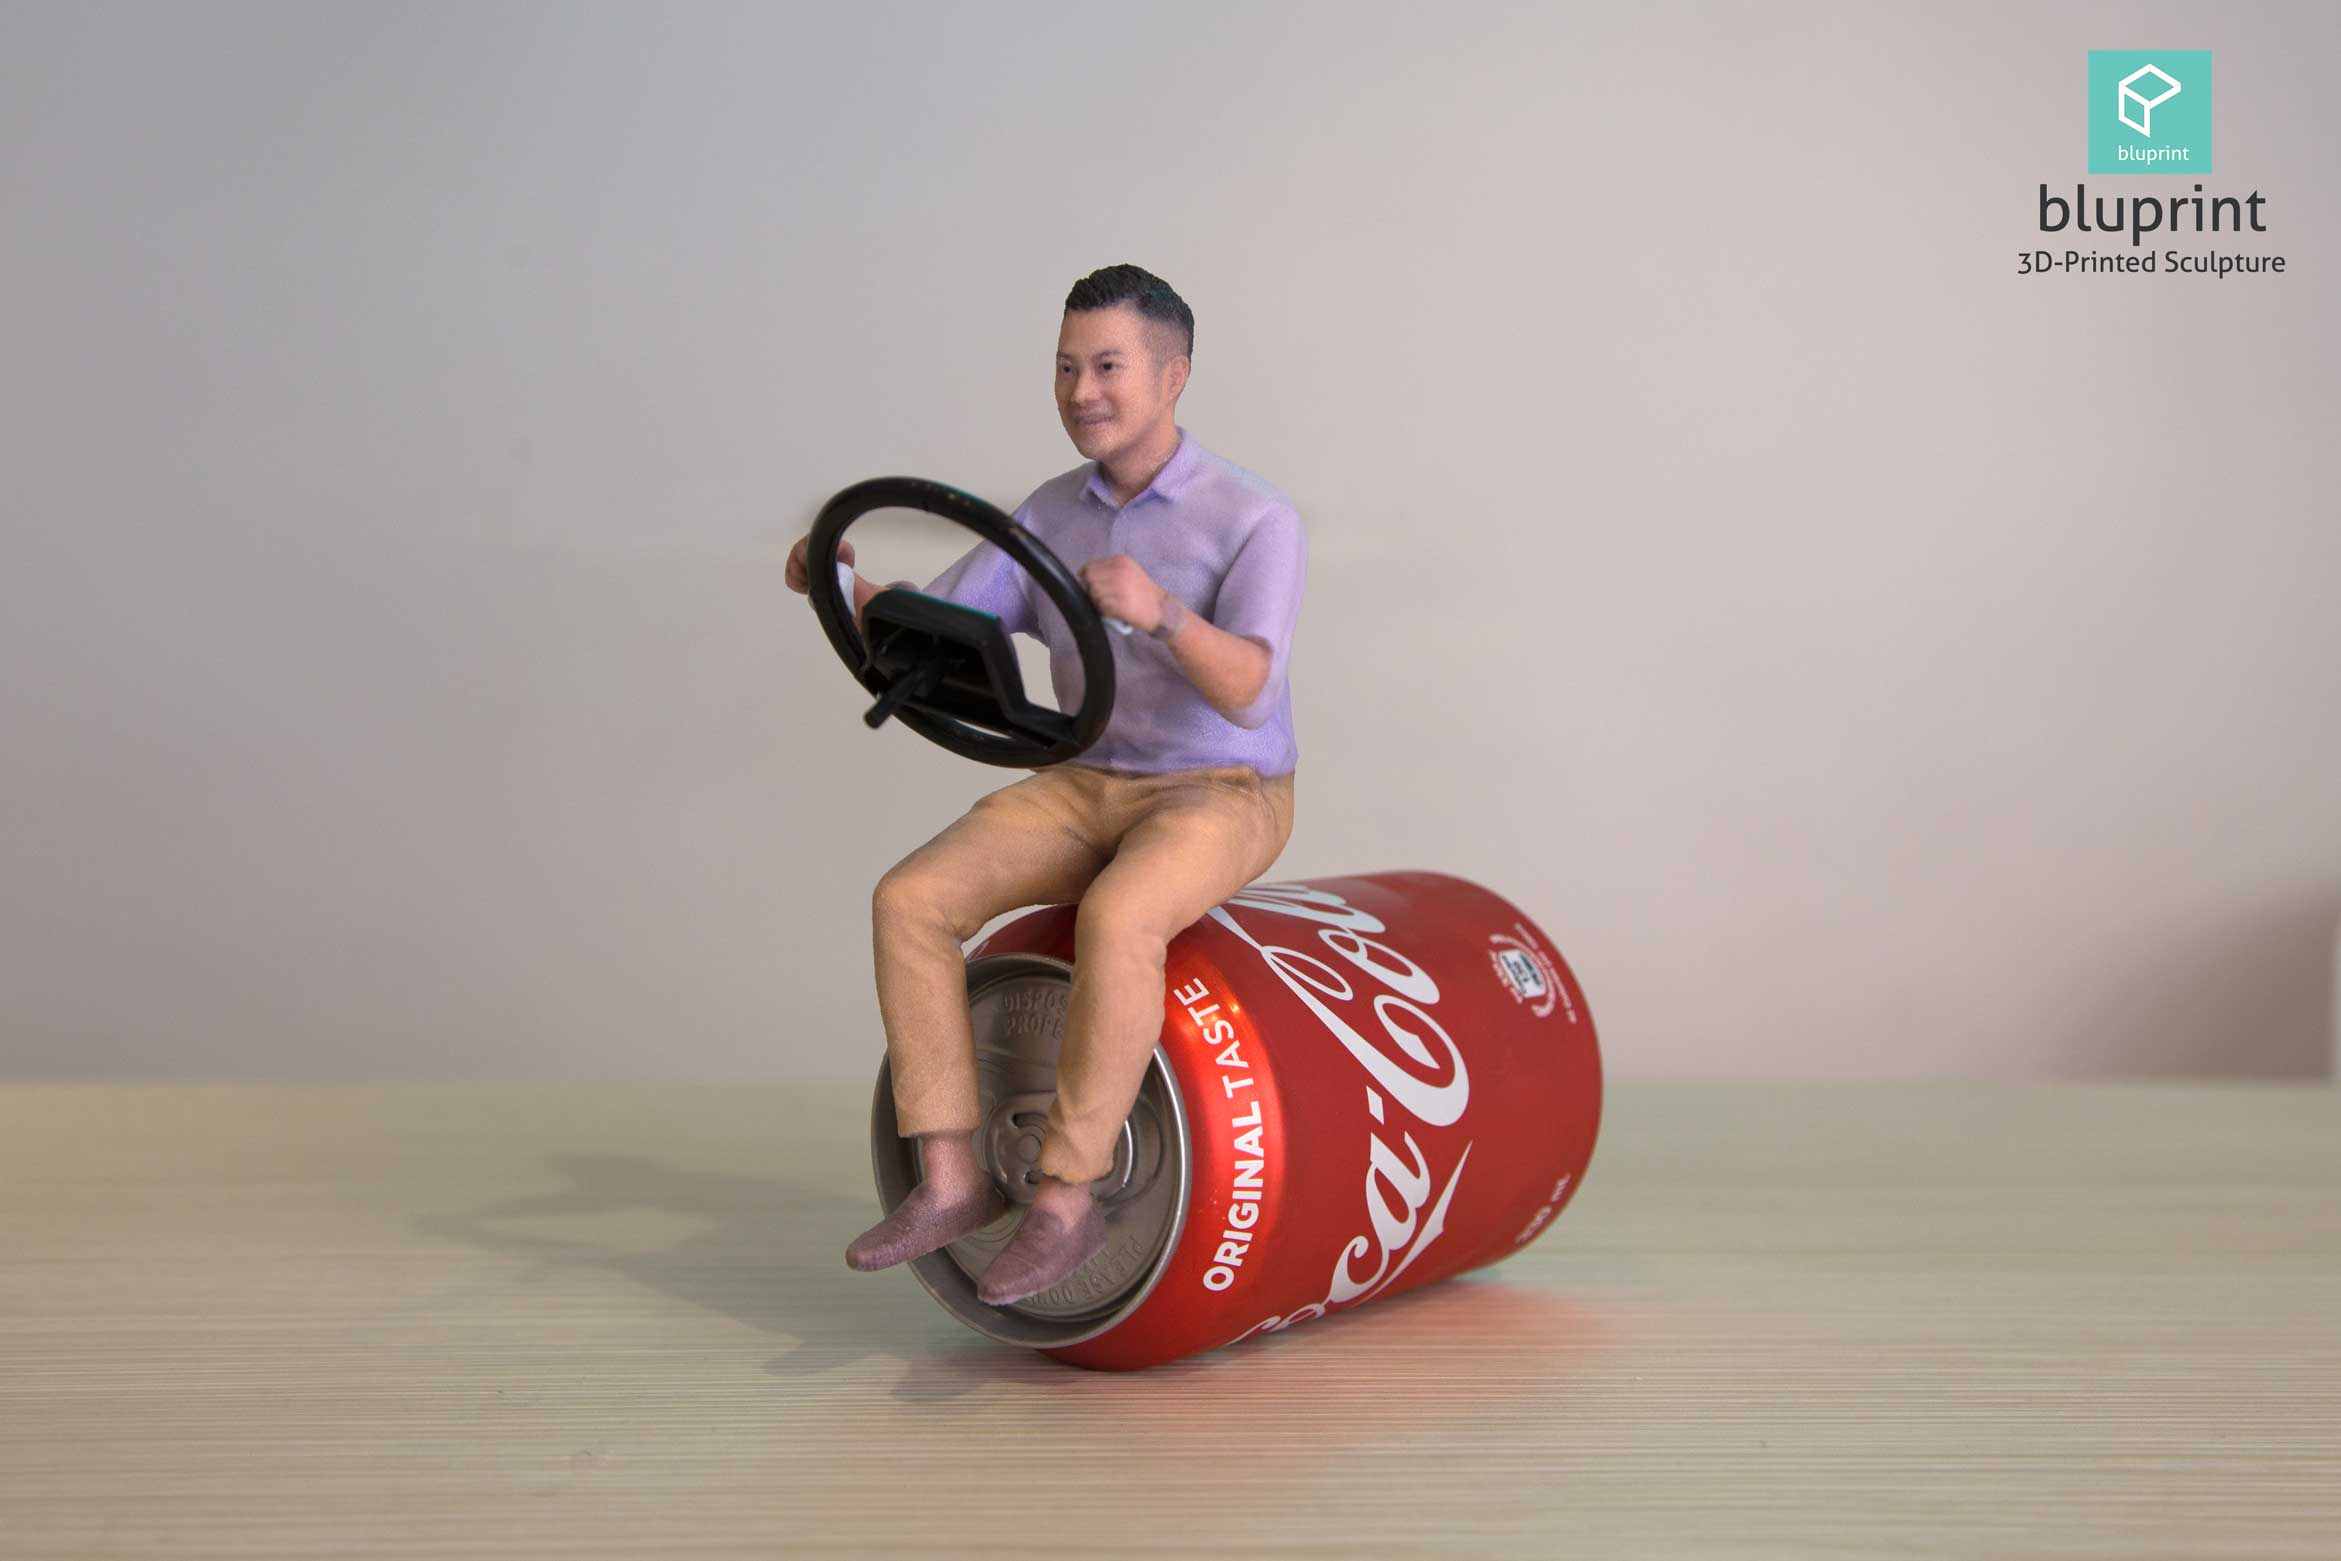 bluprint 3d printing figure sculpture hong kong man drive car coke creative